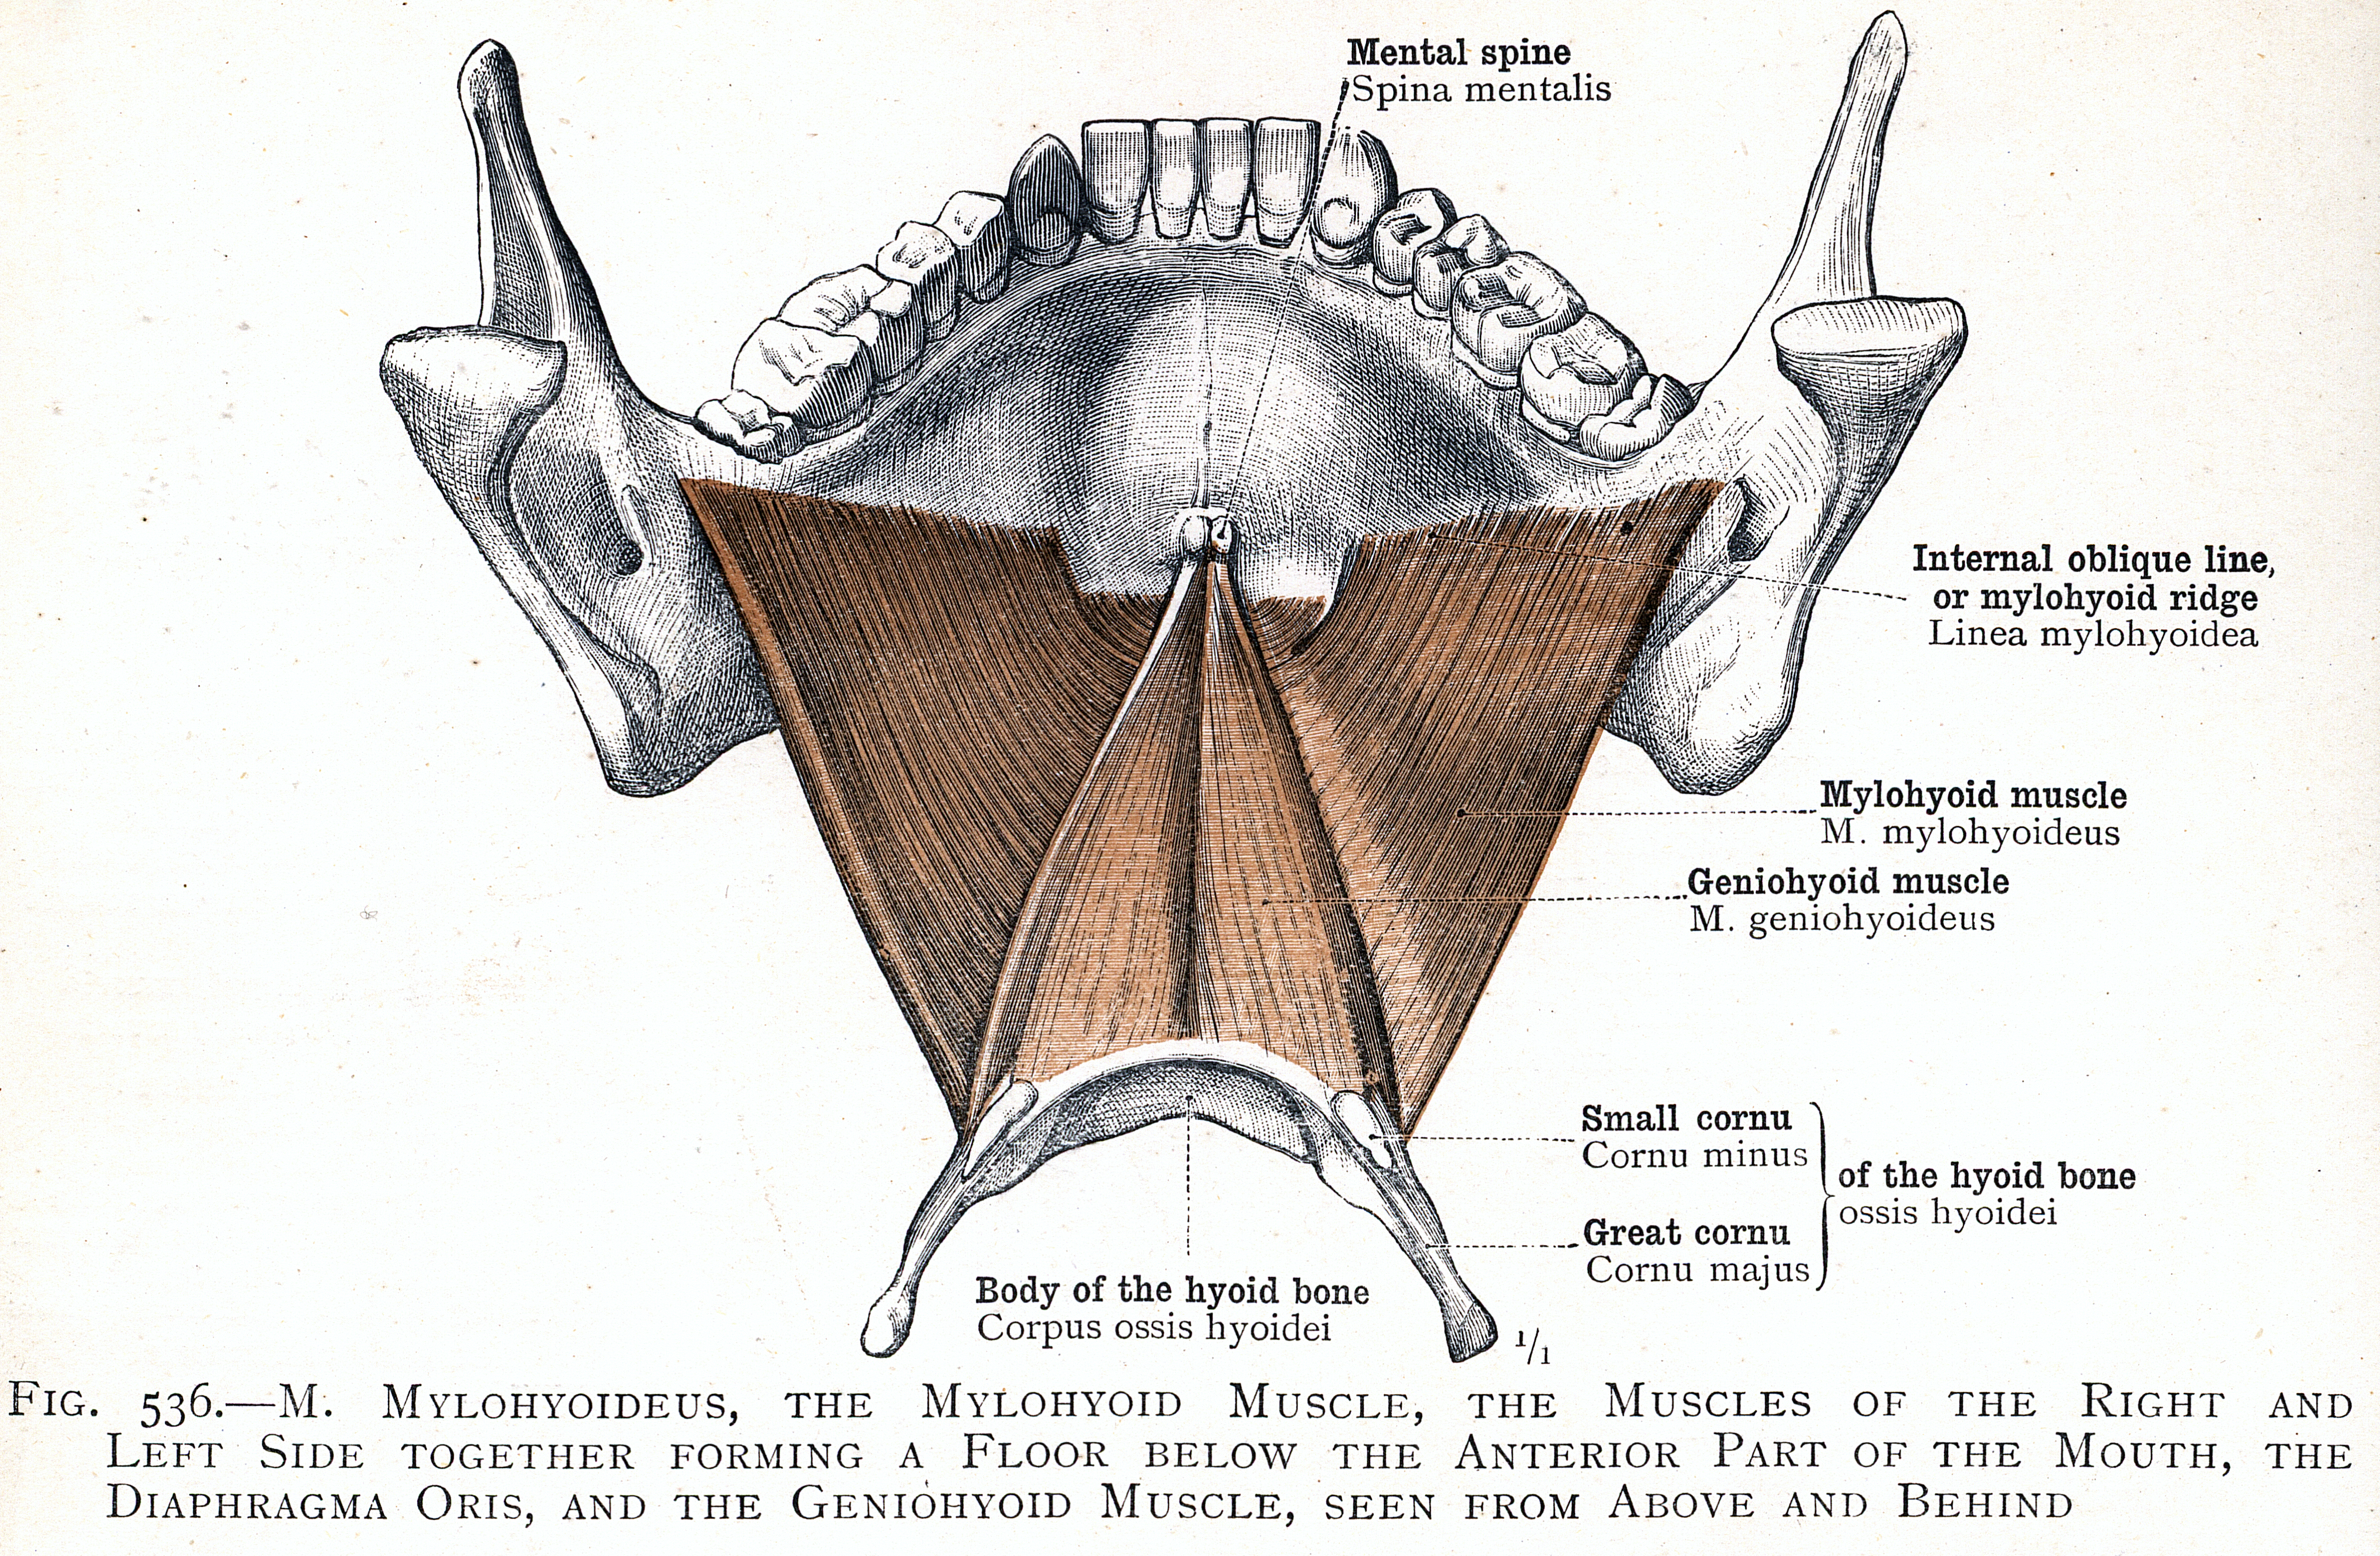 536. M. mylohyoideus, the mylohyoid muscle, the diaphragma oris, and ...